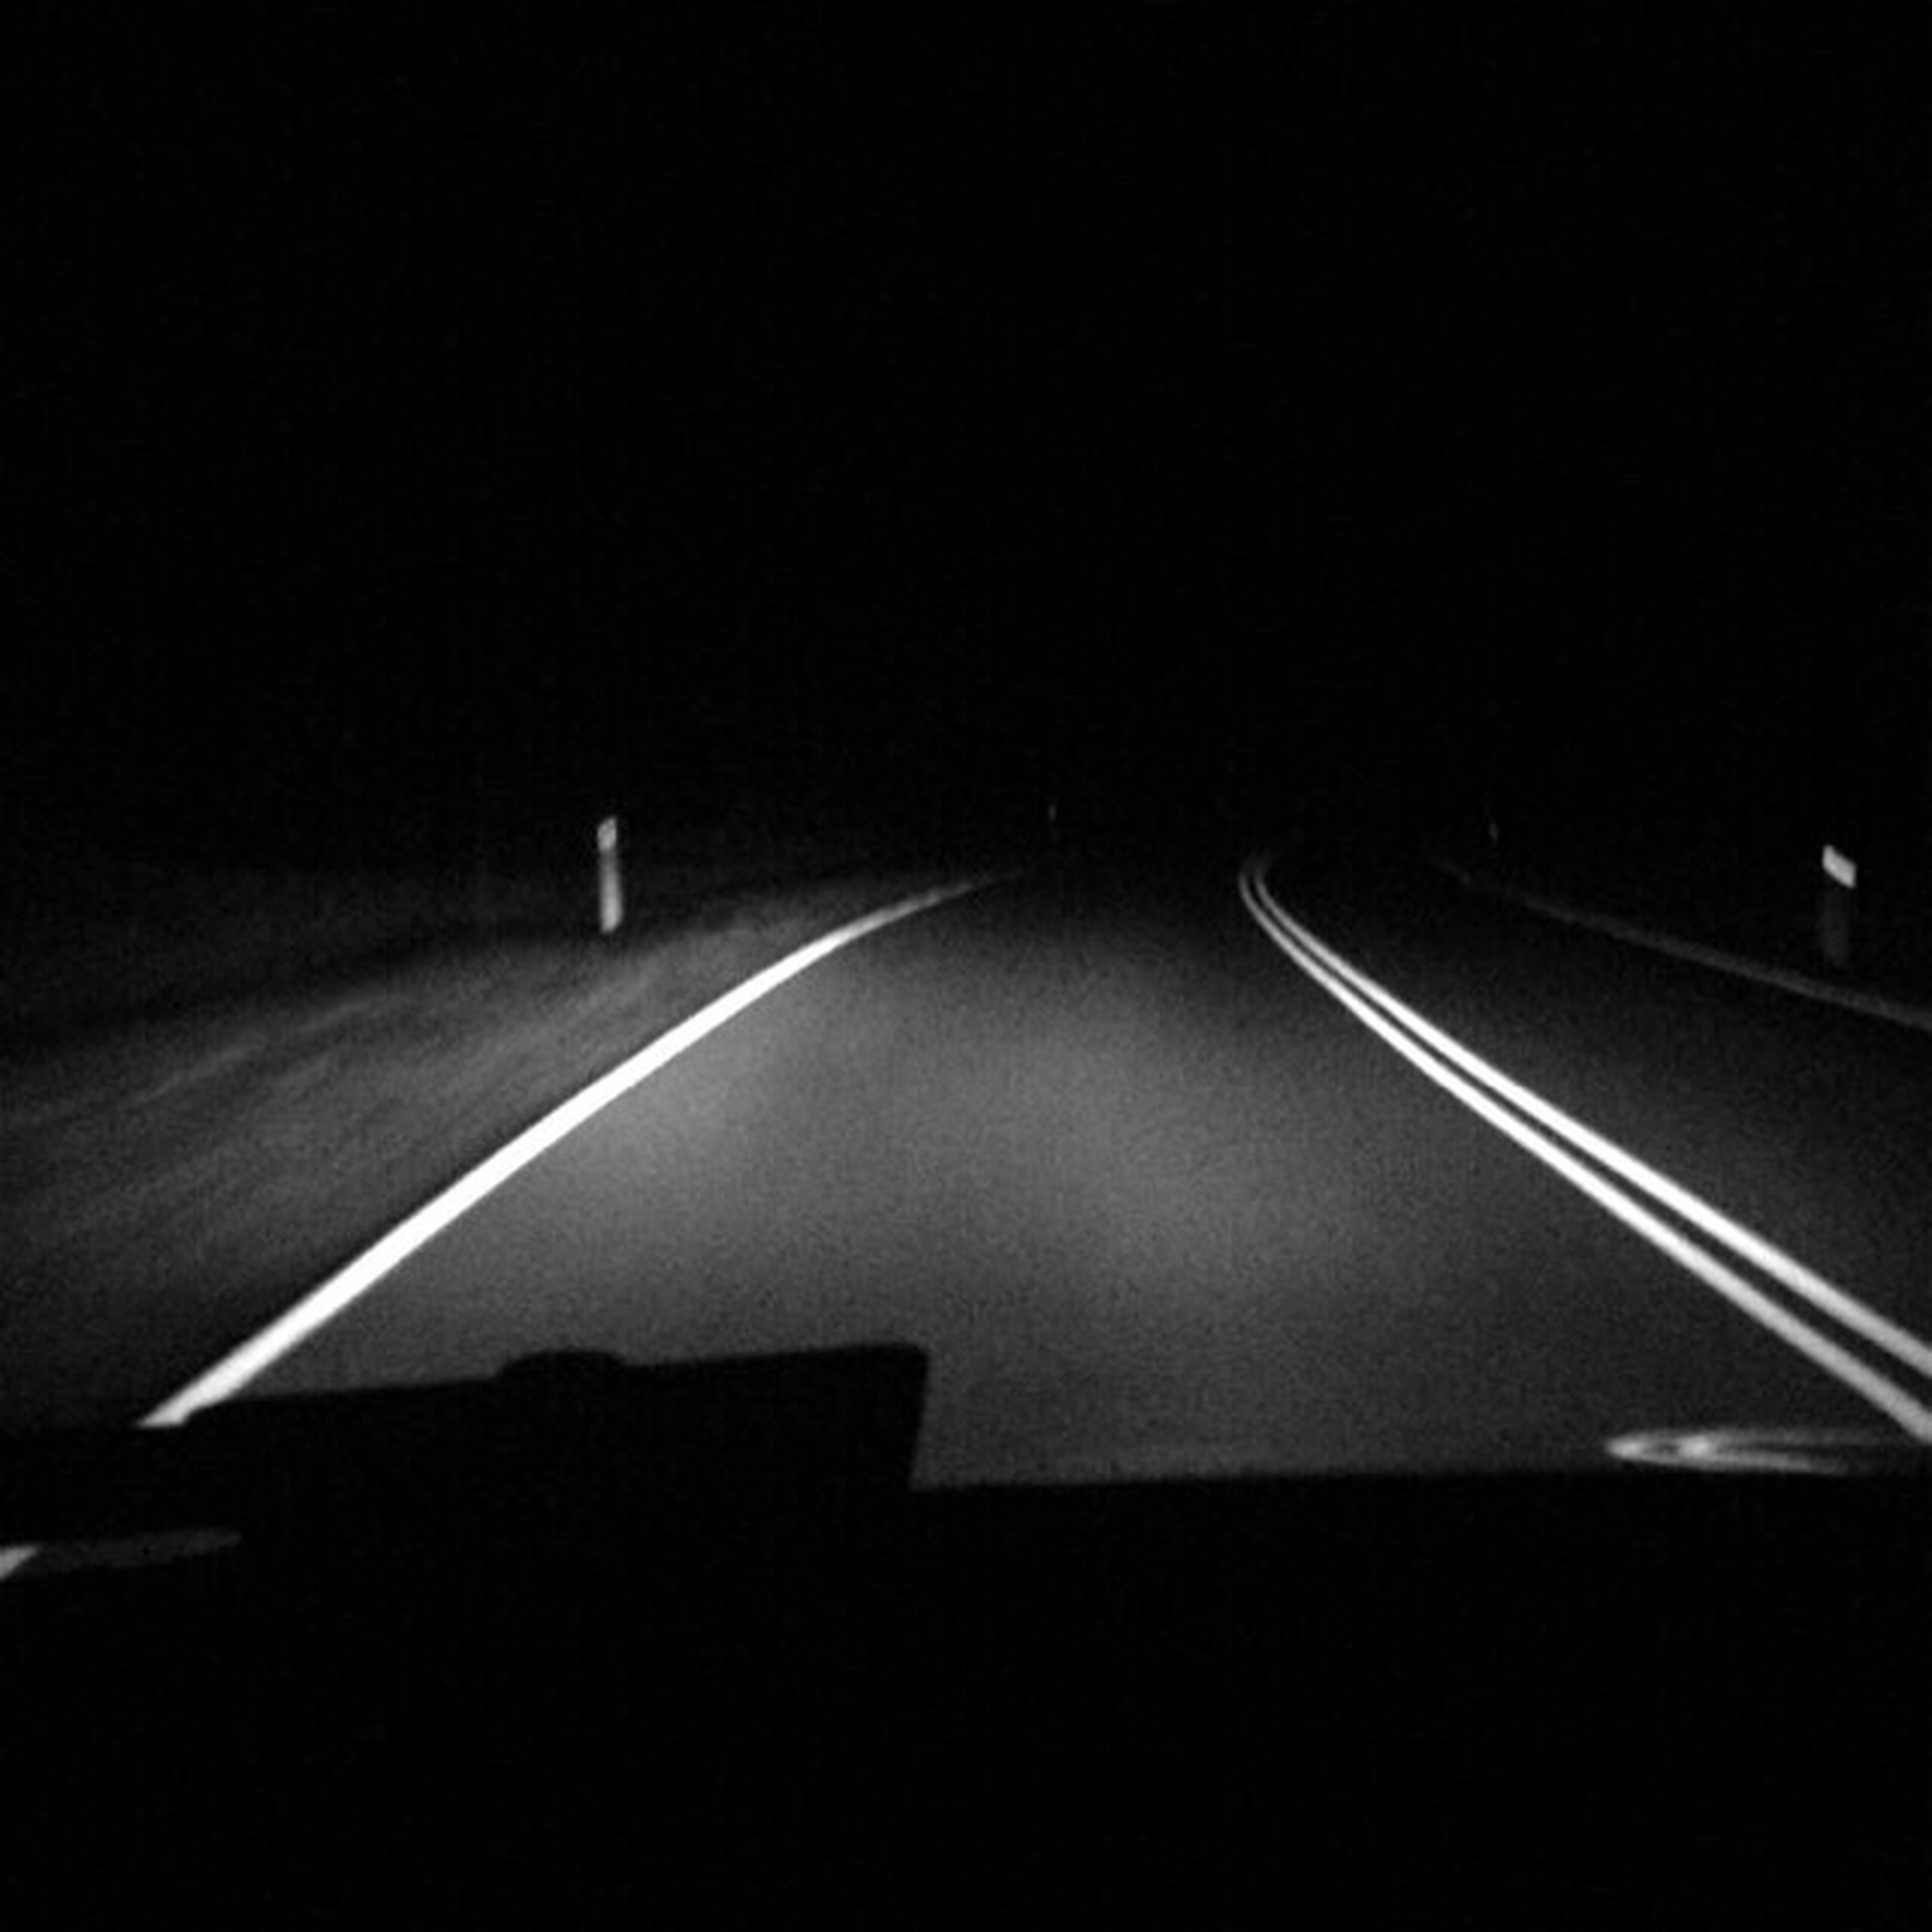 illuminated, night, the way forward, empty, diminishing perspective, road, dark, absence, no people, vanishing point, light, glowing, close-up